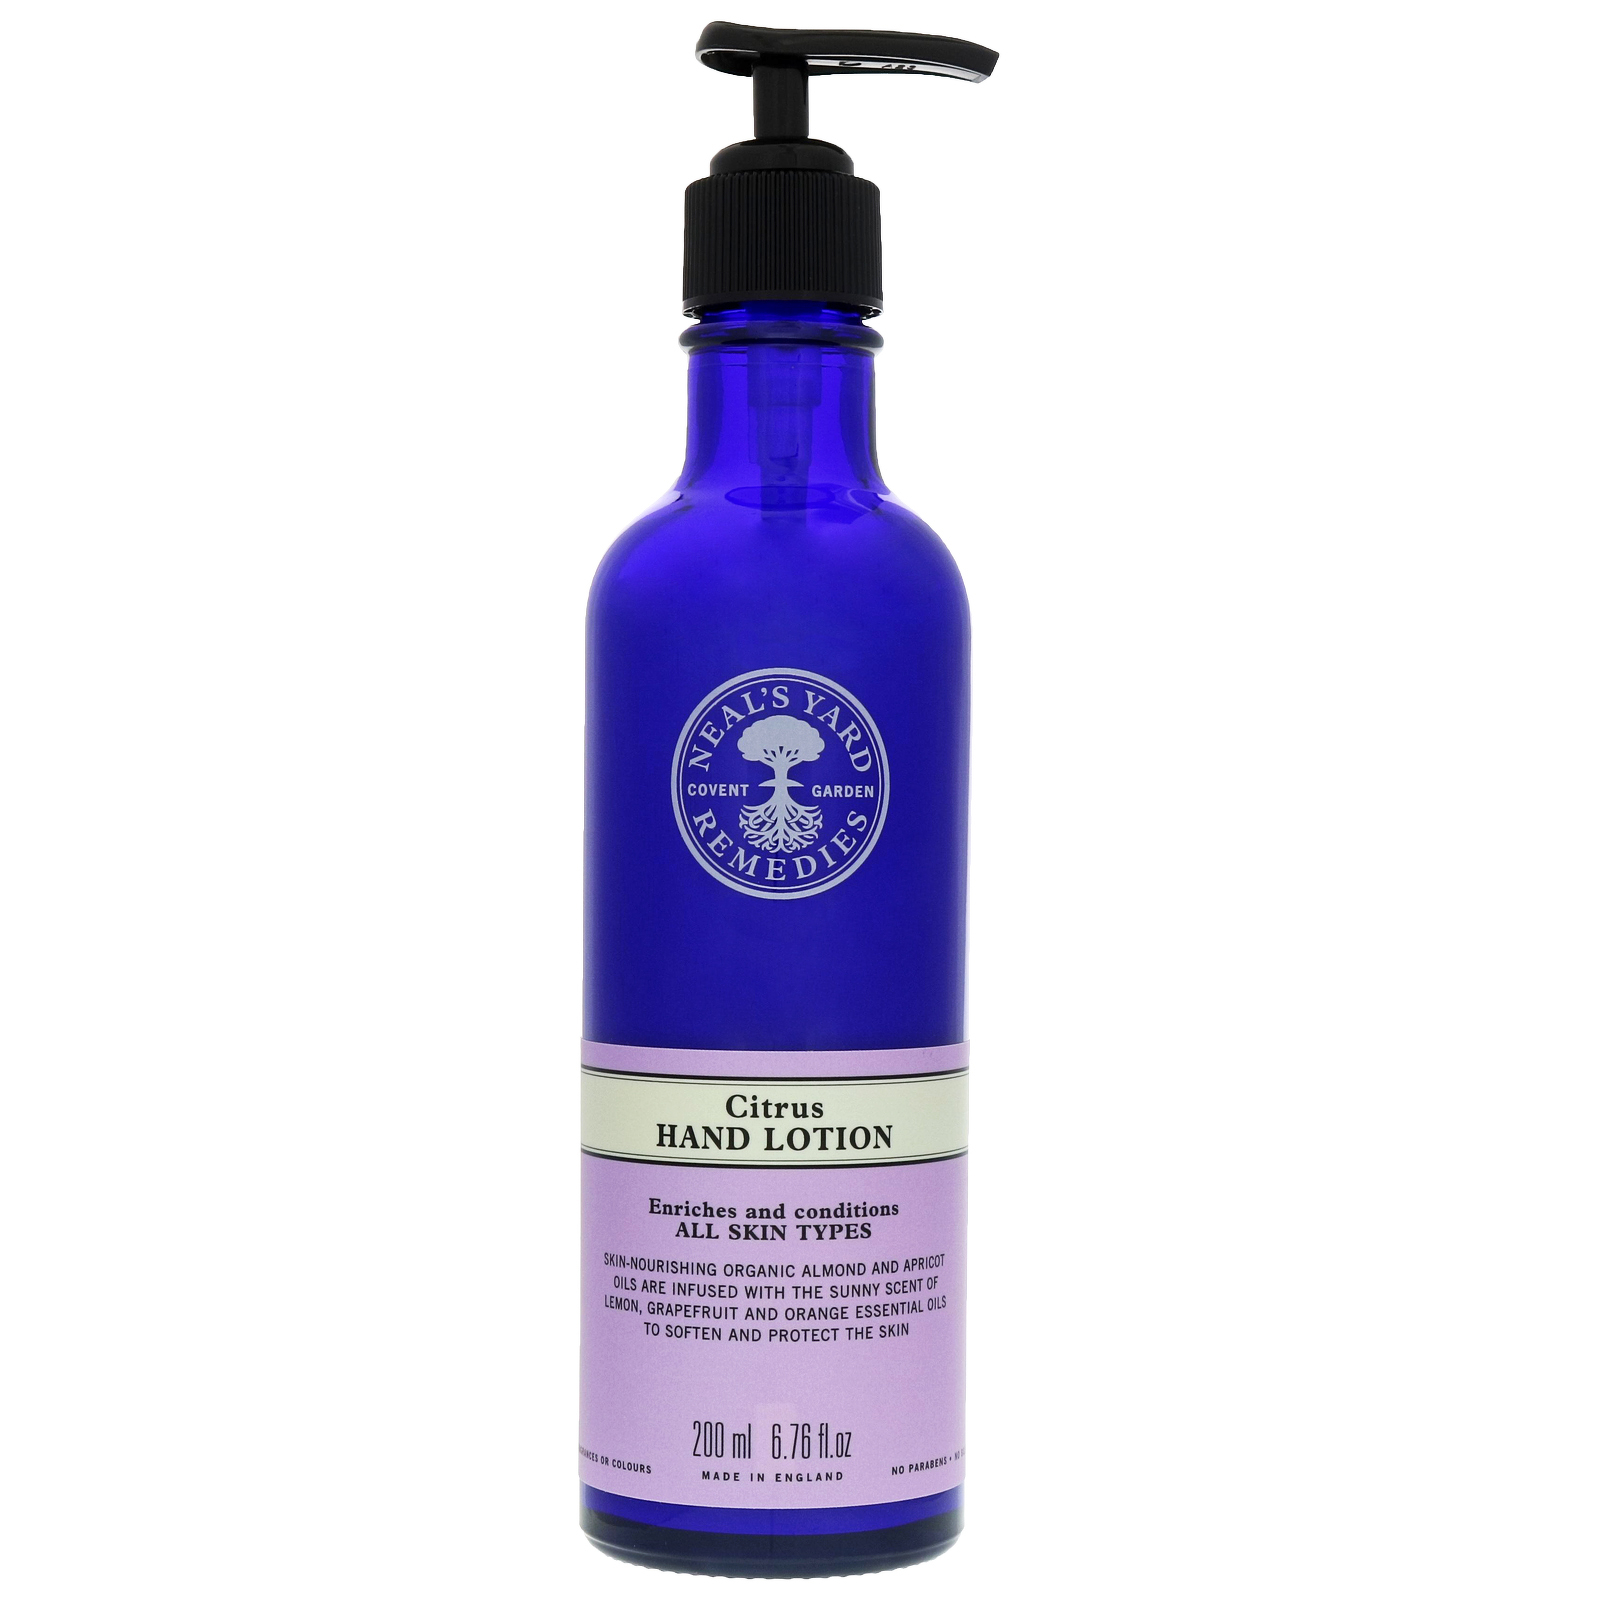 Neal's Yard Remedies Hand Care Citrus Hand Lotion 200ml